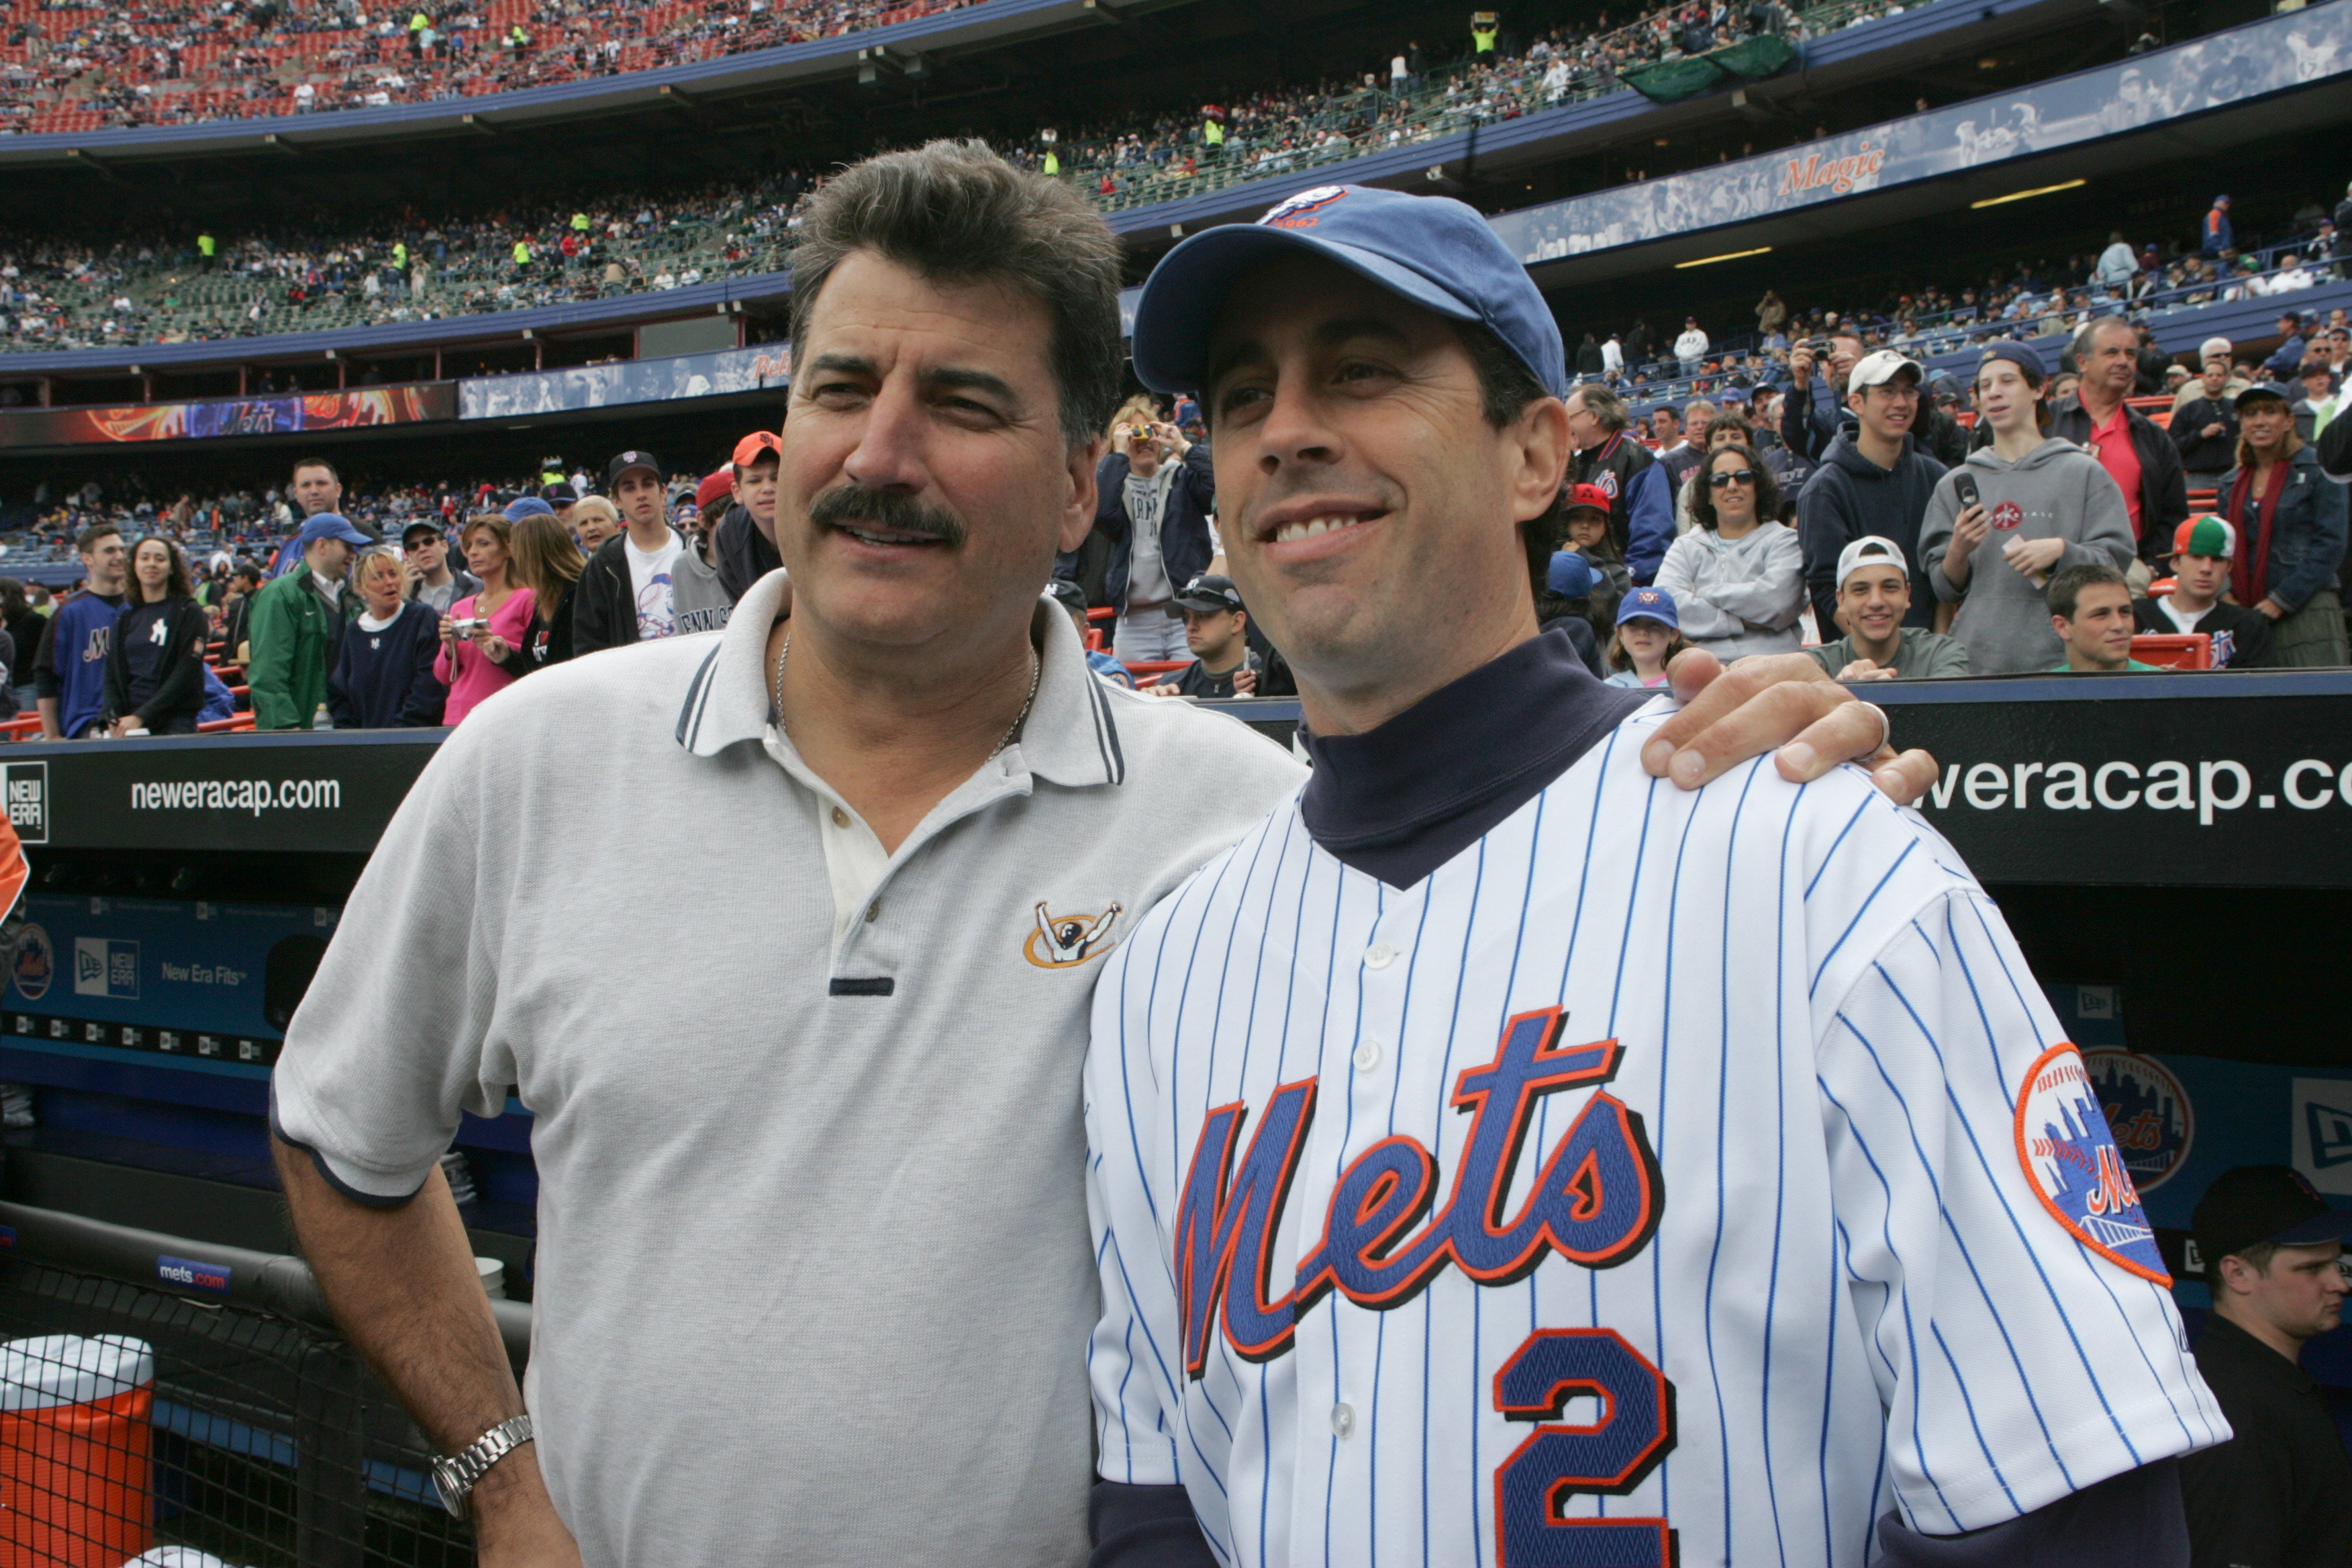 FLUSHING, NY - MAY 22:  Former player Keith Hernandez (L) poses for a picture with comedian Jerry Seinfeld before the game between the New York Mets and the New York Yankees at Shea Stadium on May 22, 2005 in Flushing, New York. The Yankees defeated the M